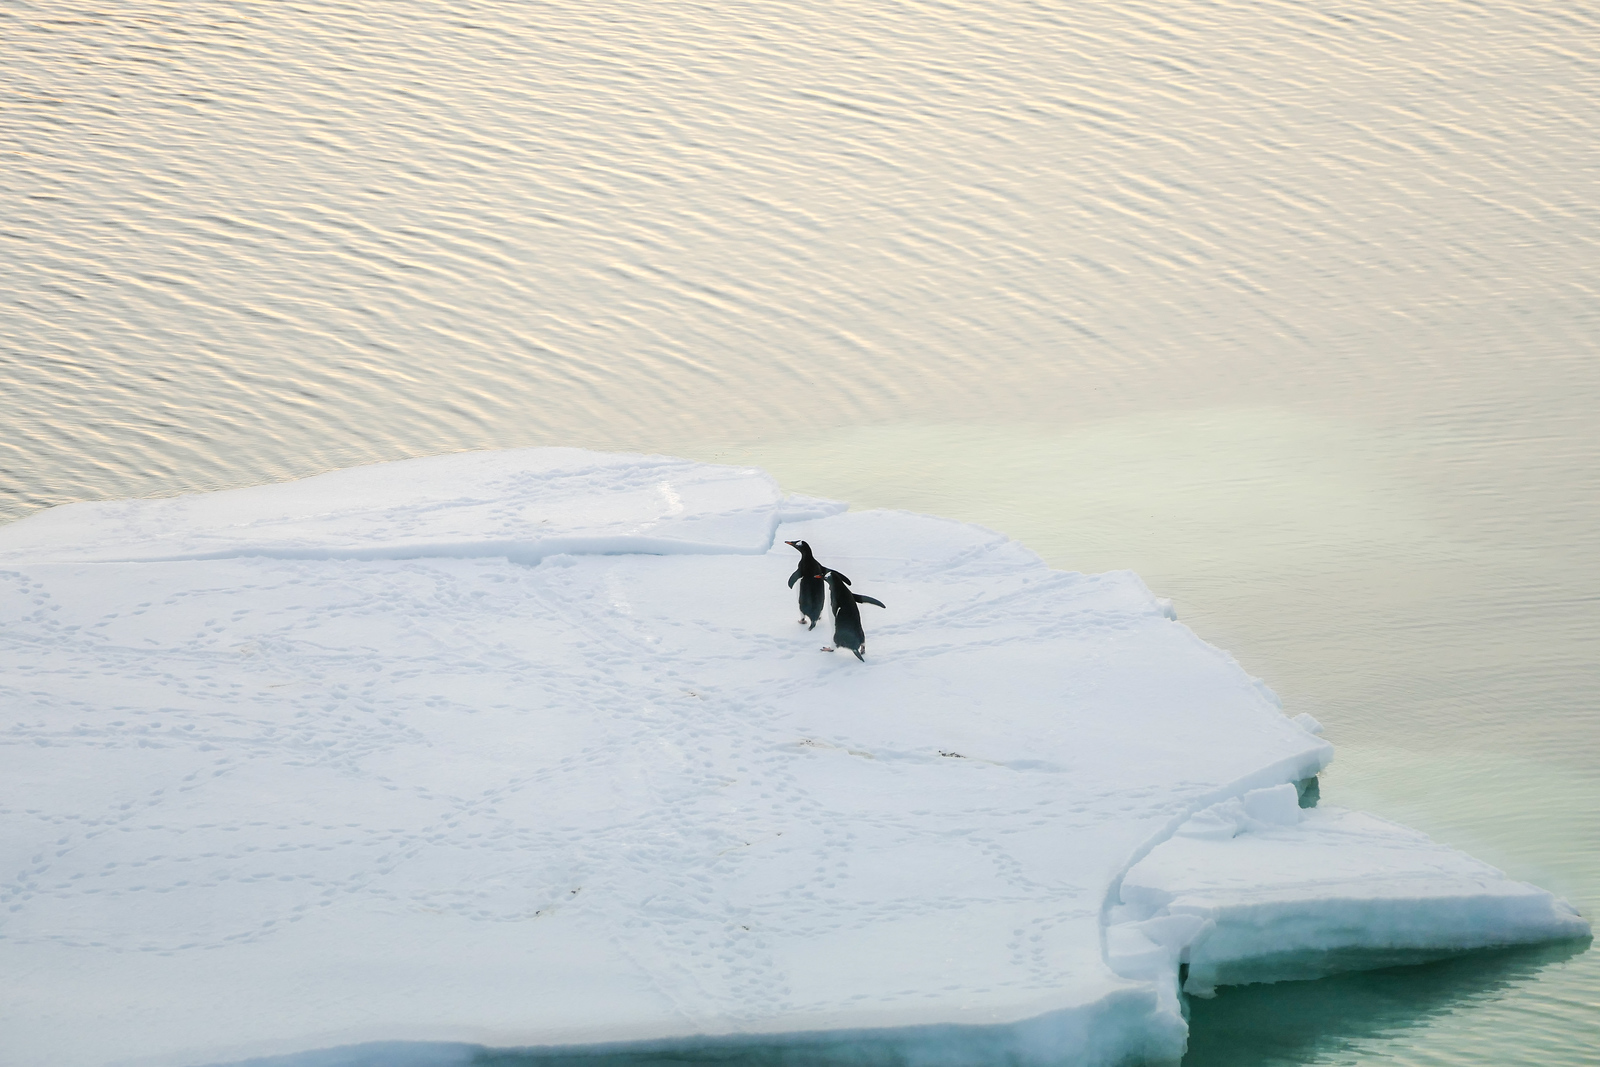 Penguins scurry across an iceberg in Neumayer Channel. It's part of the travel fun on an Antarctica cruise.